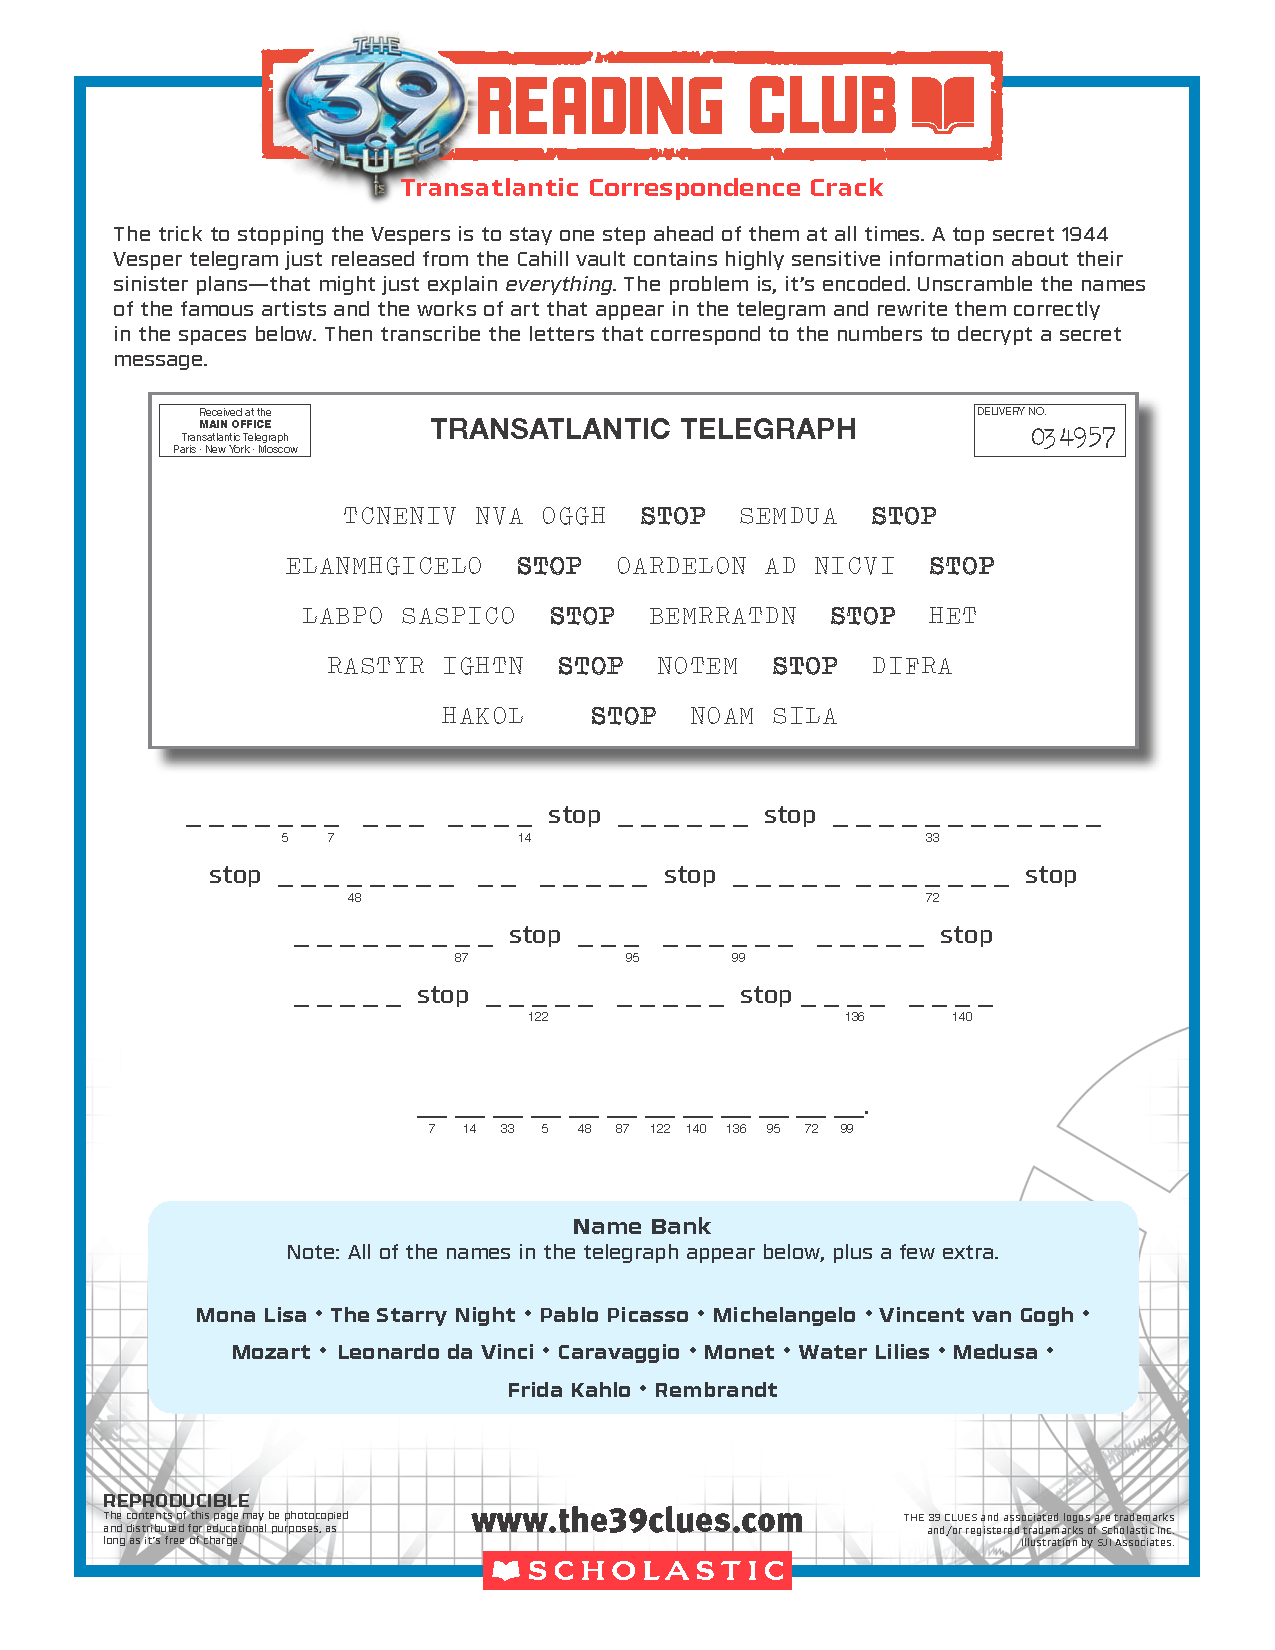 Free The 39 Clues Reading Club Code Cracking Activity Sheet